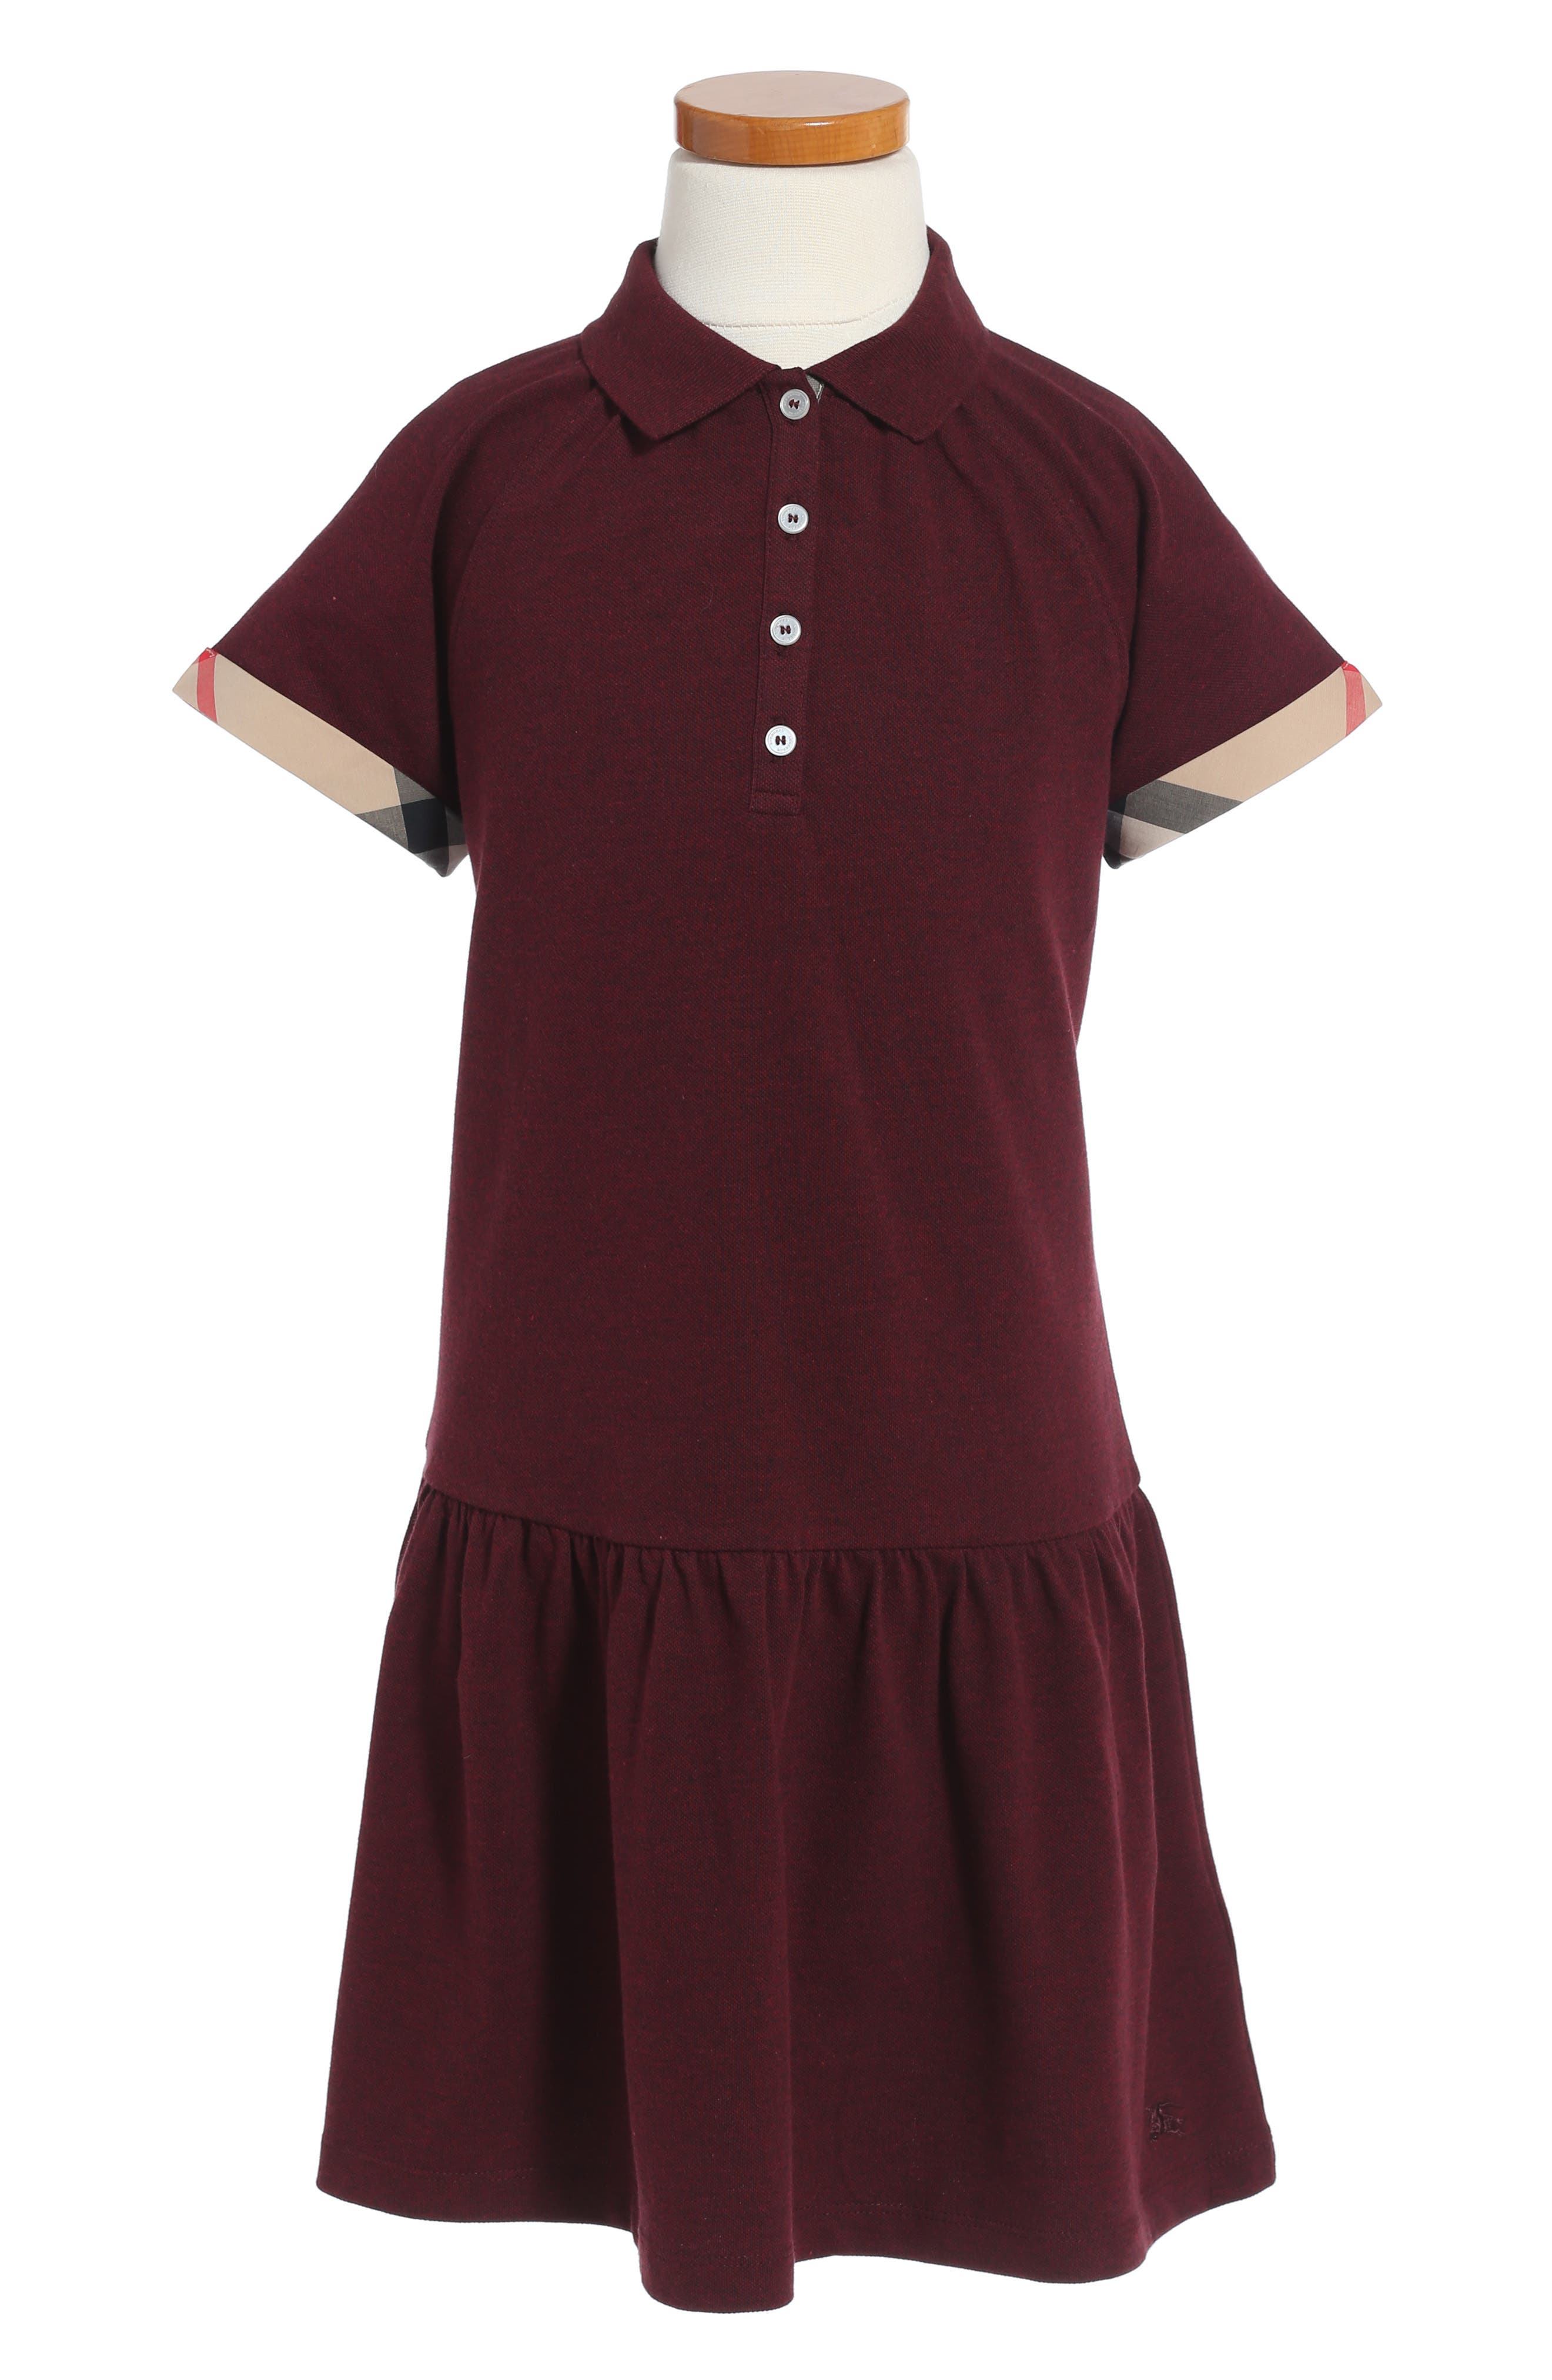 Main Image - Burberry Mini Cali Polo Dress (Toddler Girls, Little Girls & Big Girls)